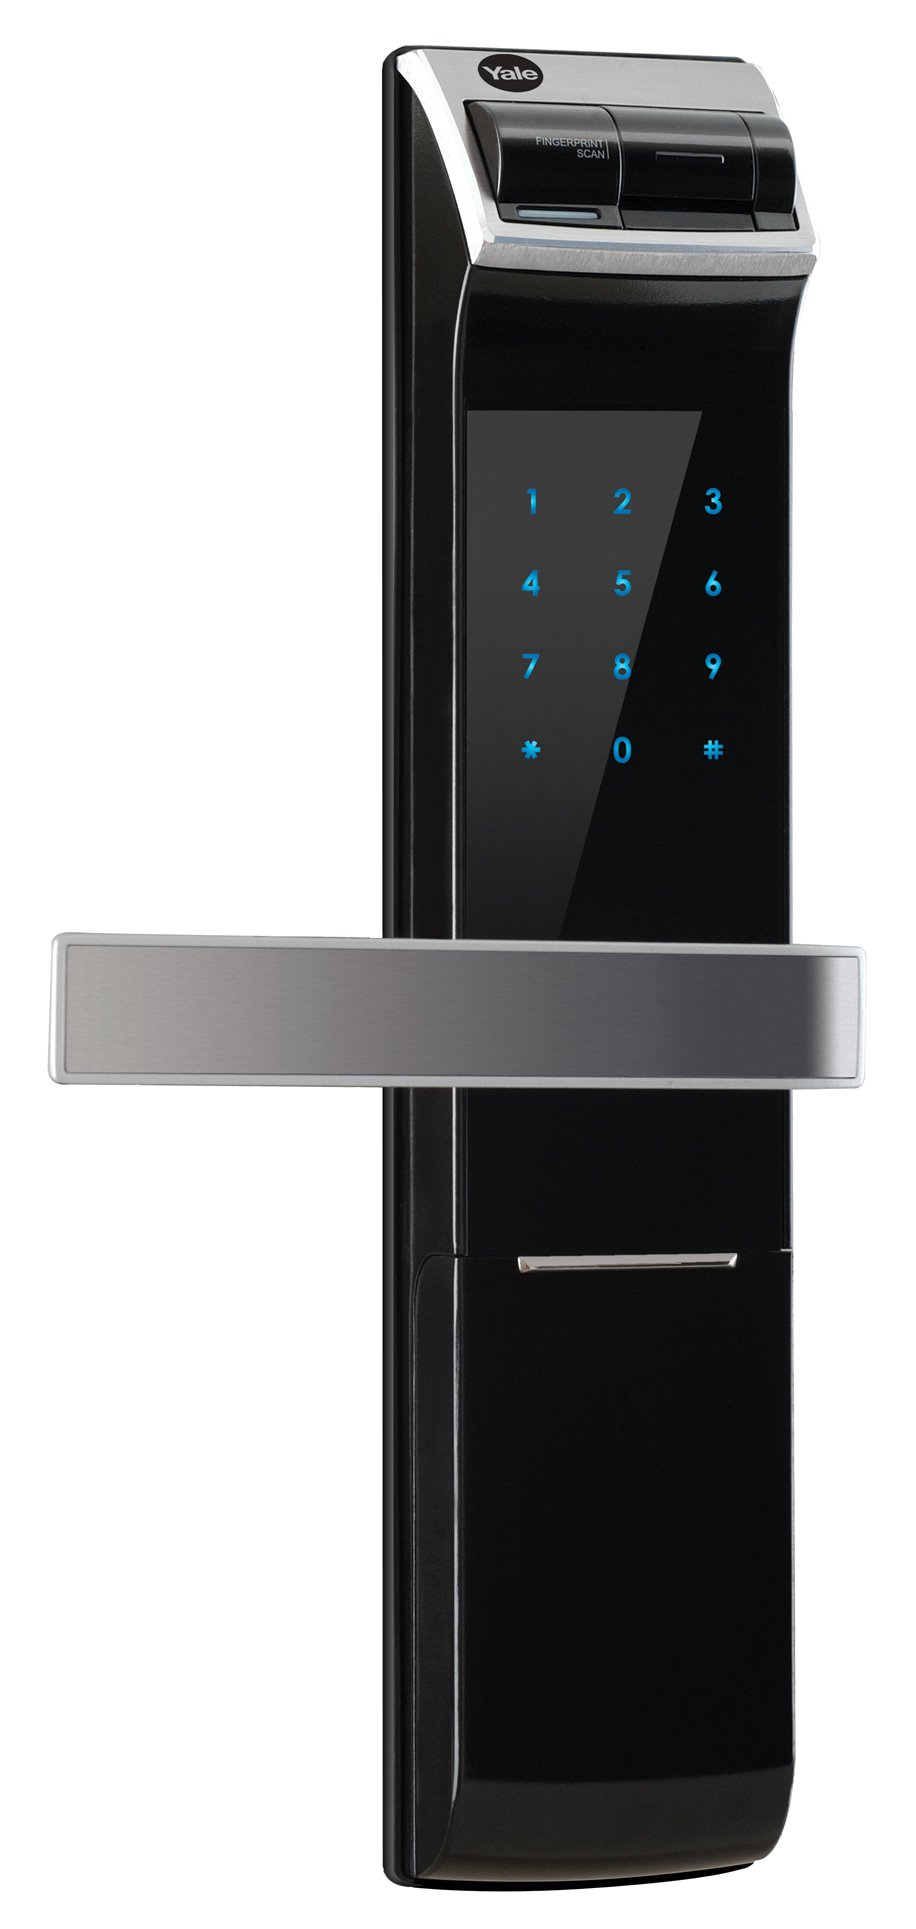 Keyless solution: ydm series user manual yale asia.